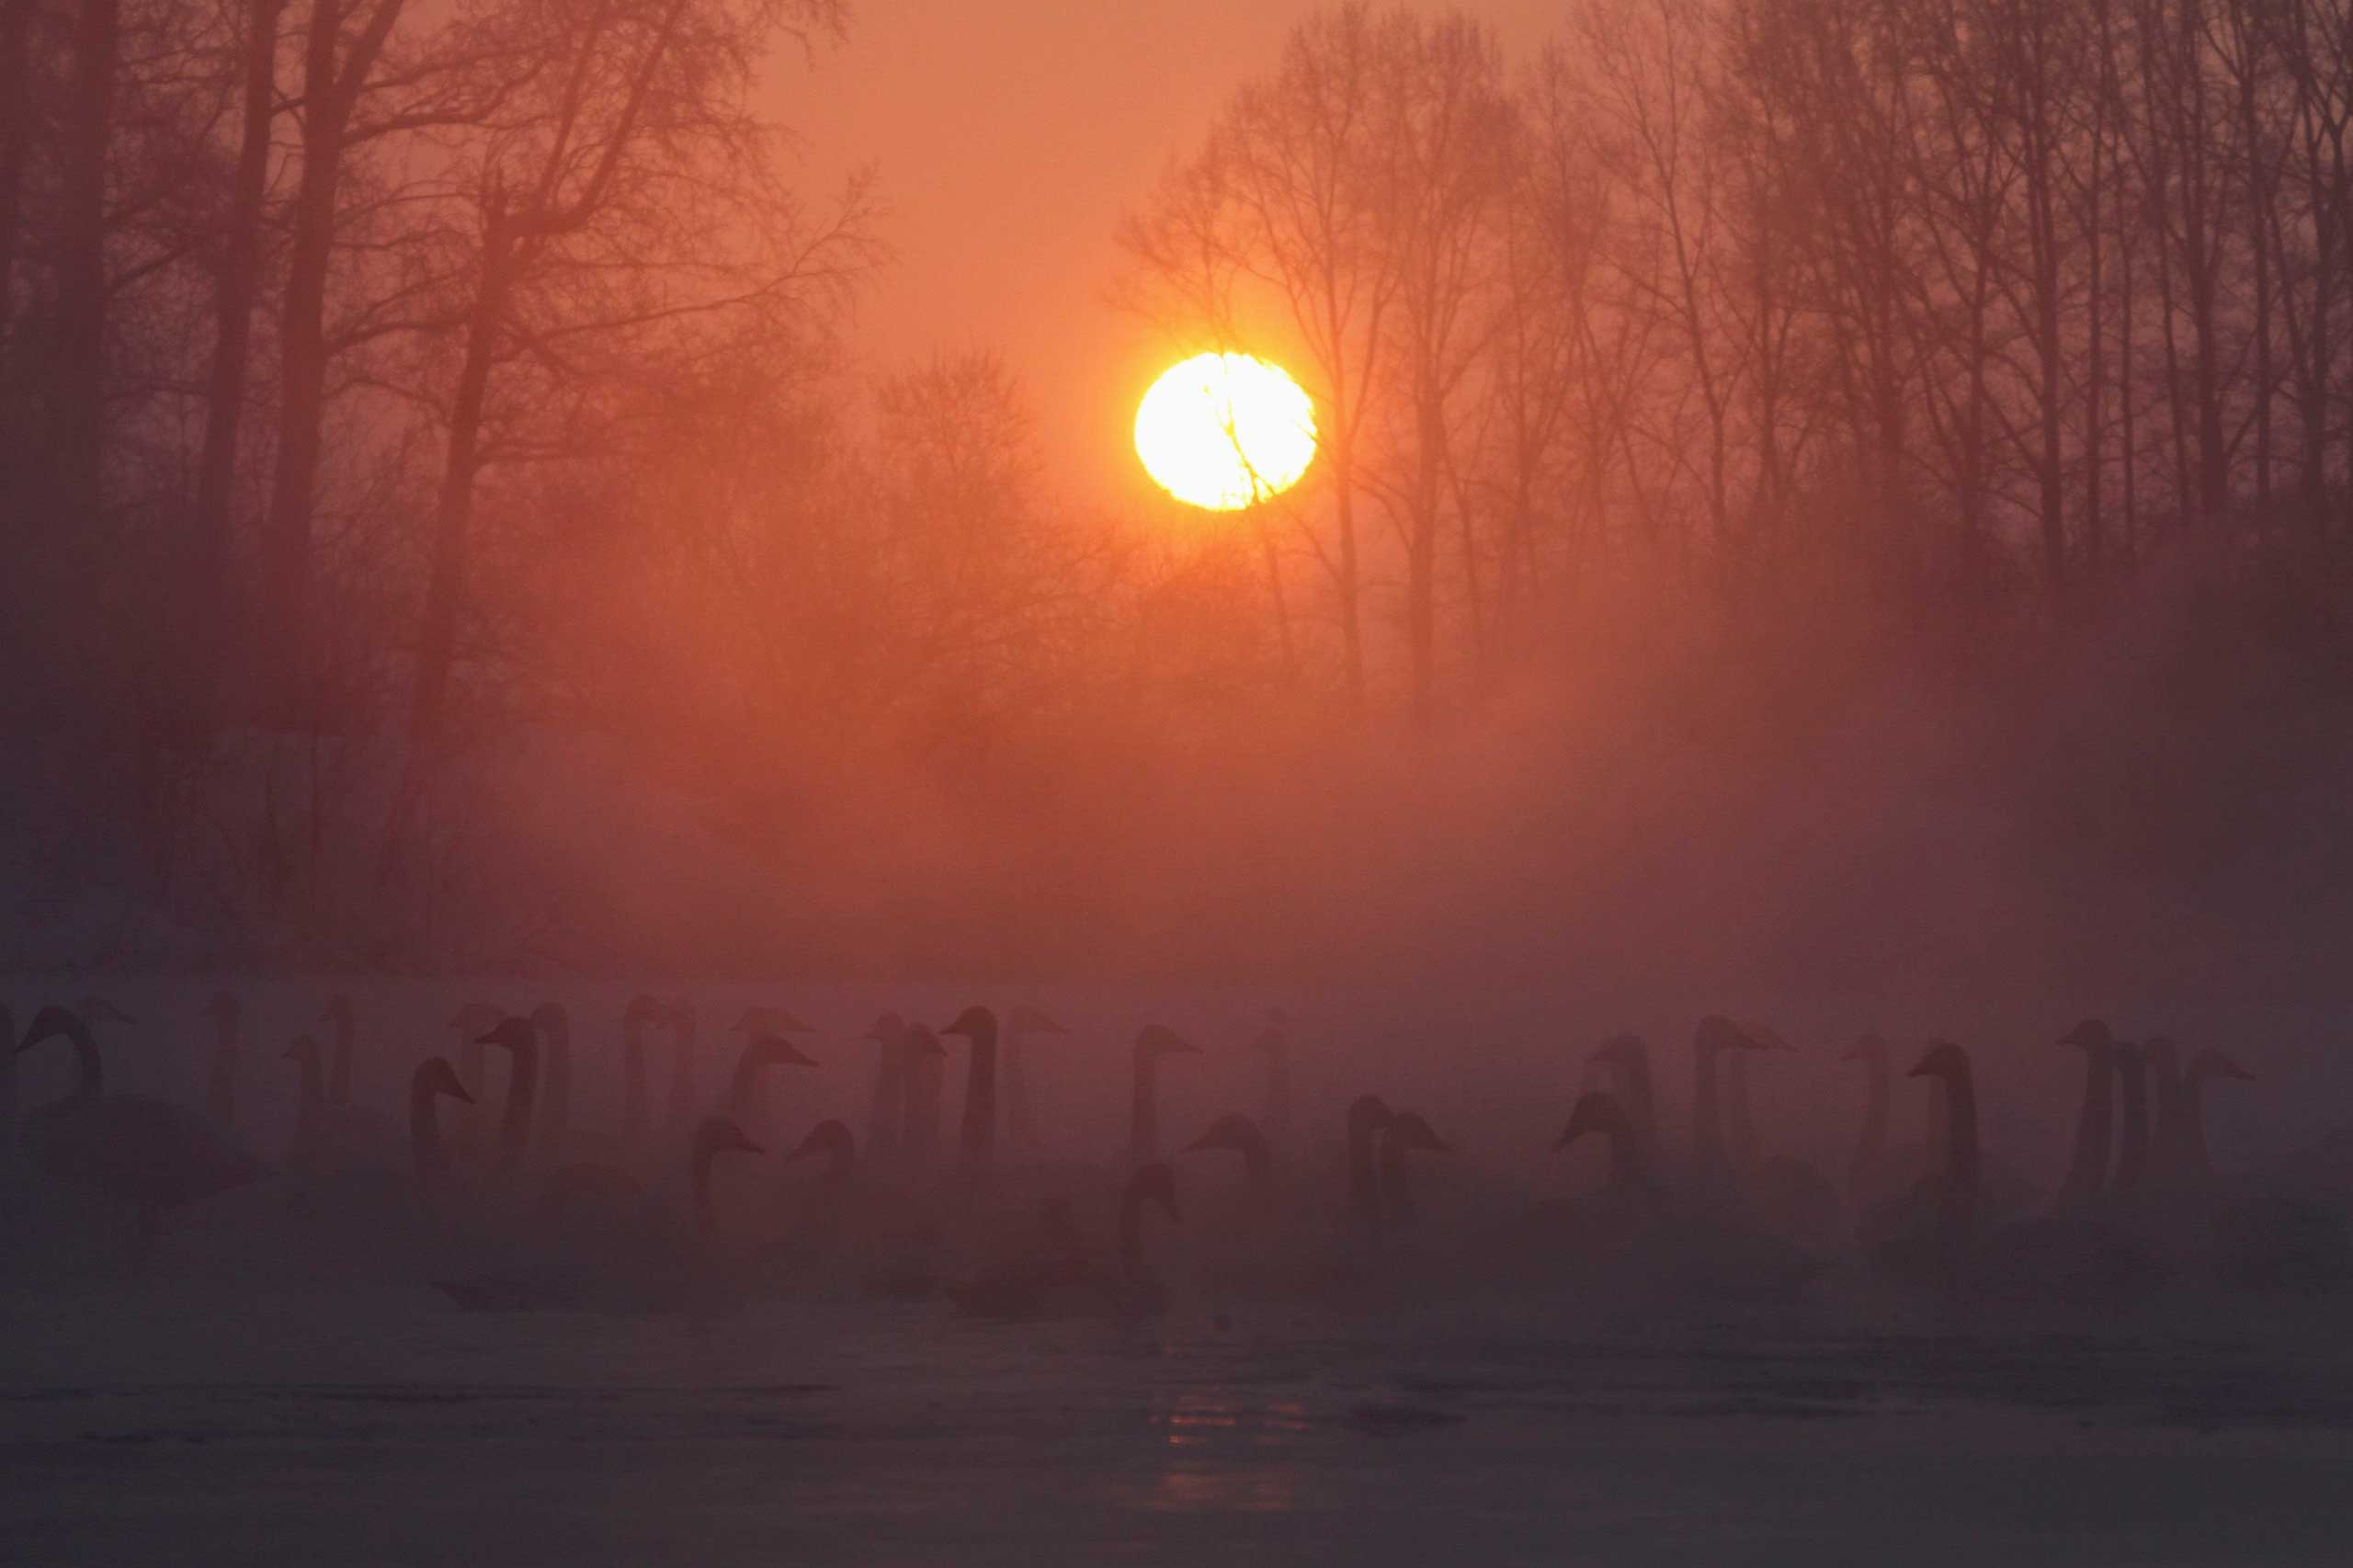 Jan. 26, 2015. Swans swim over a lake, with the air temperature at about -31 degrees Fahrenheit as steam ascends above the water during sunset near the village of Urozhainy, Sovetsky district of Altai region, Russia.